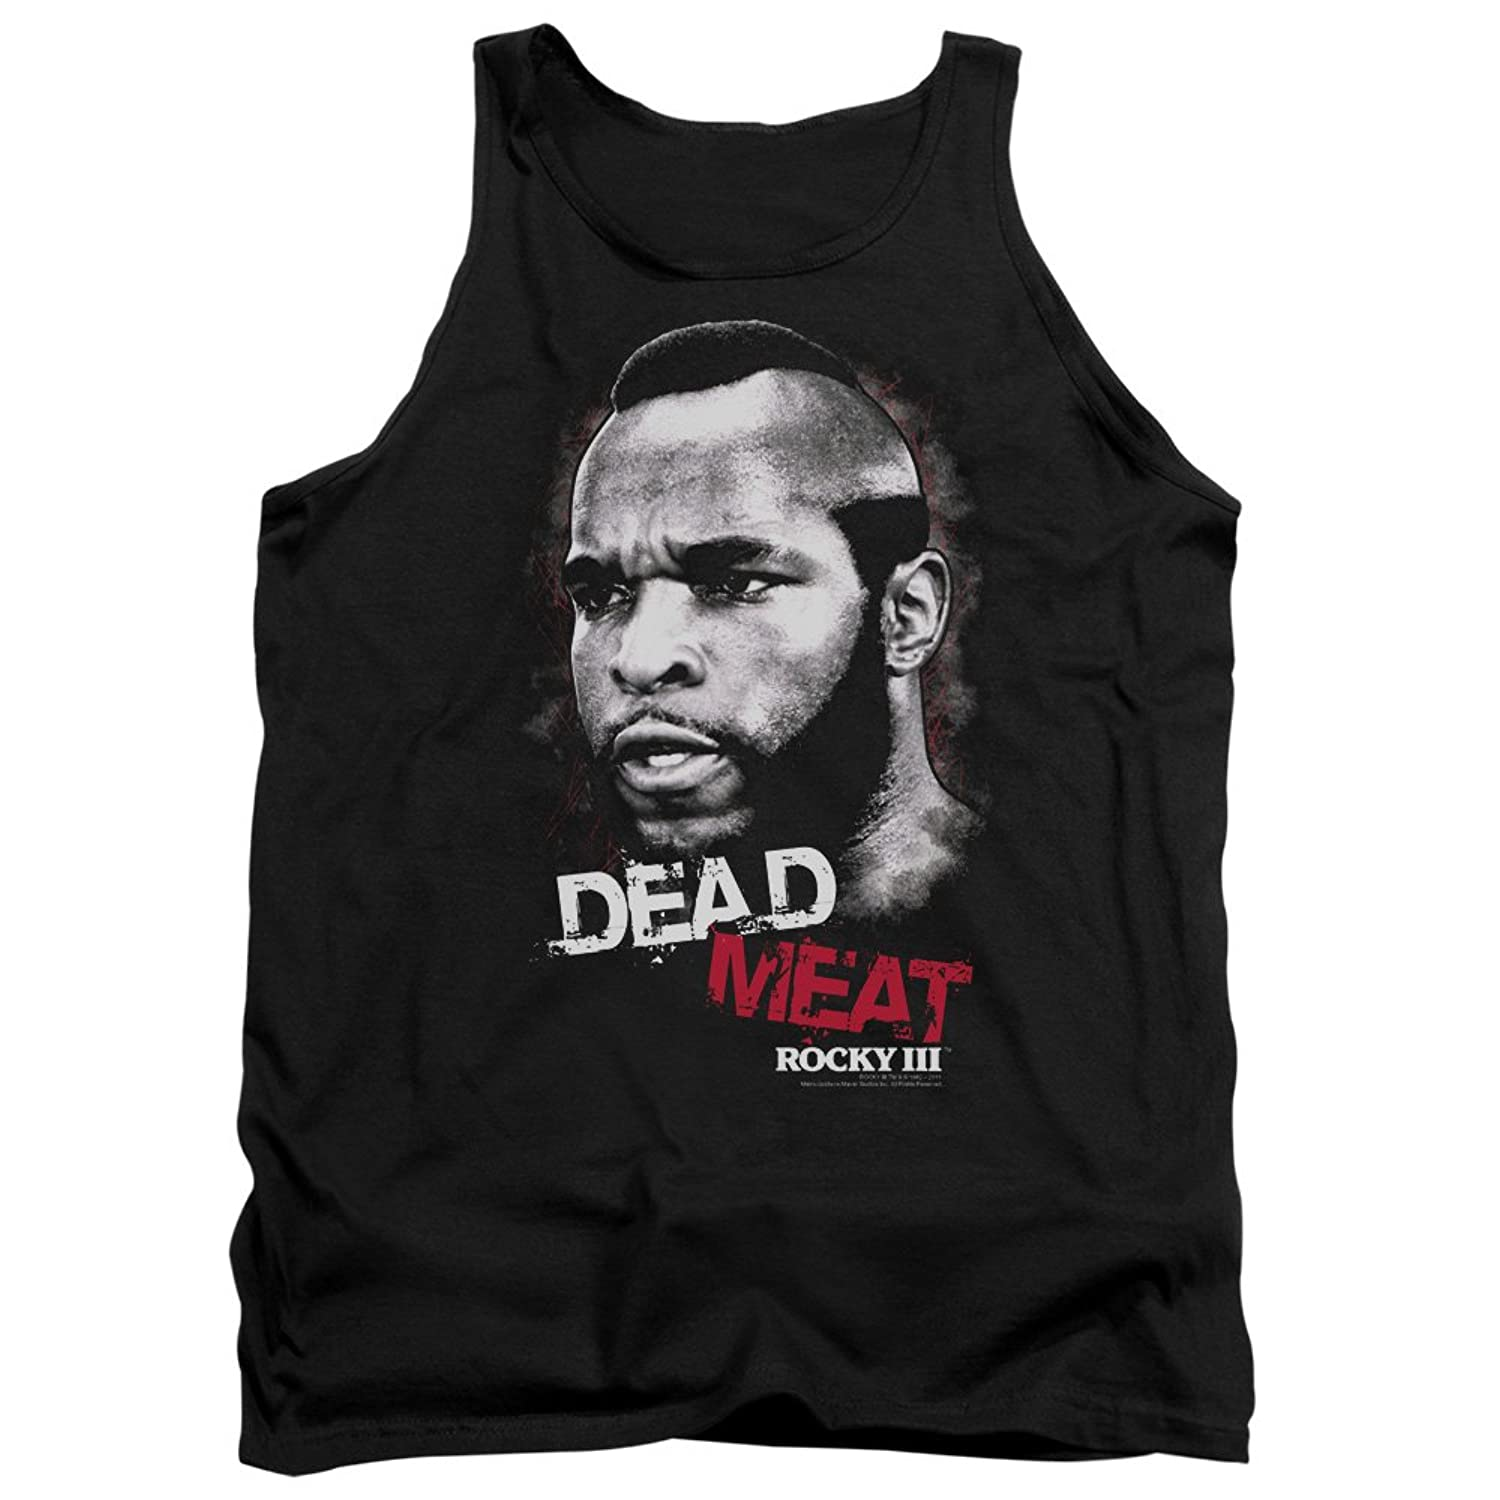 Rocky III MGM Movie Dead Meat Adult Tank Top Shirt